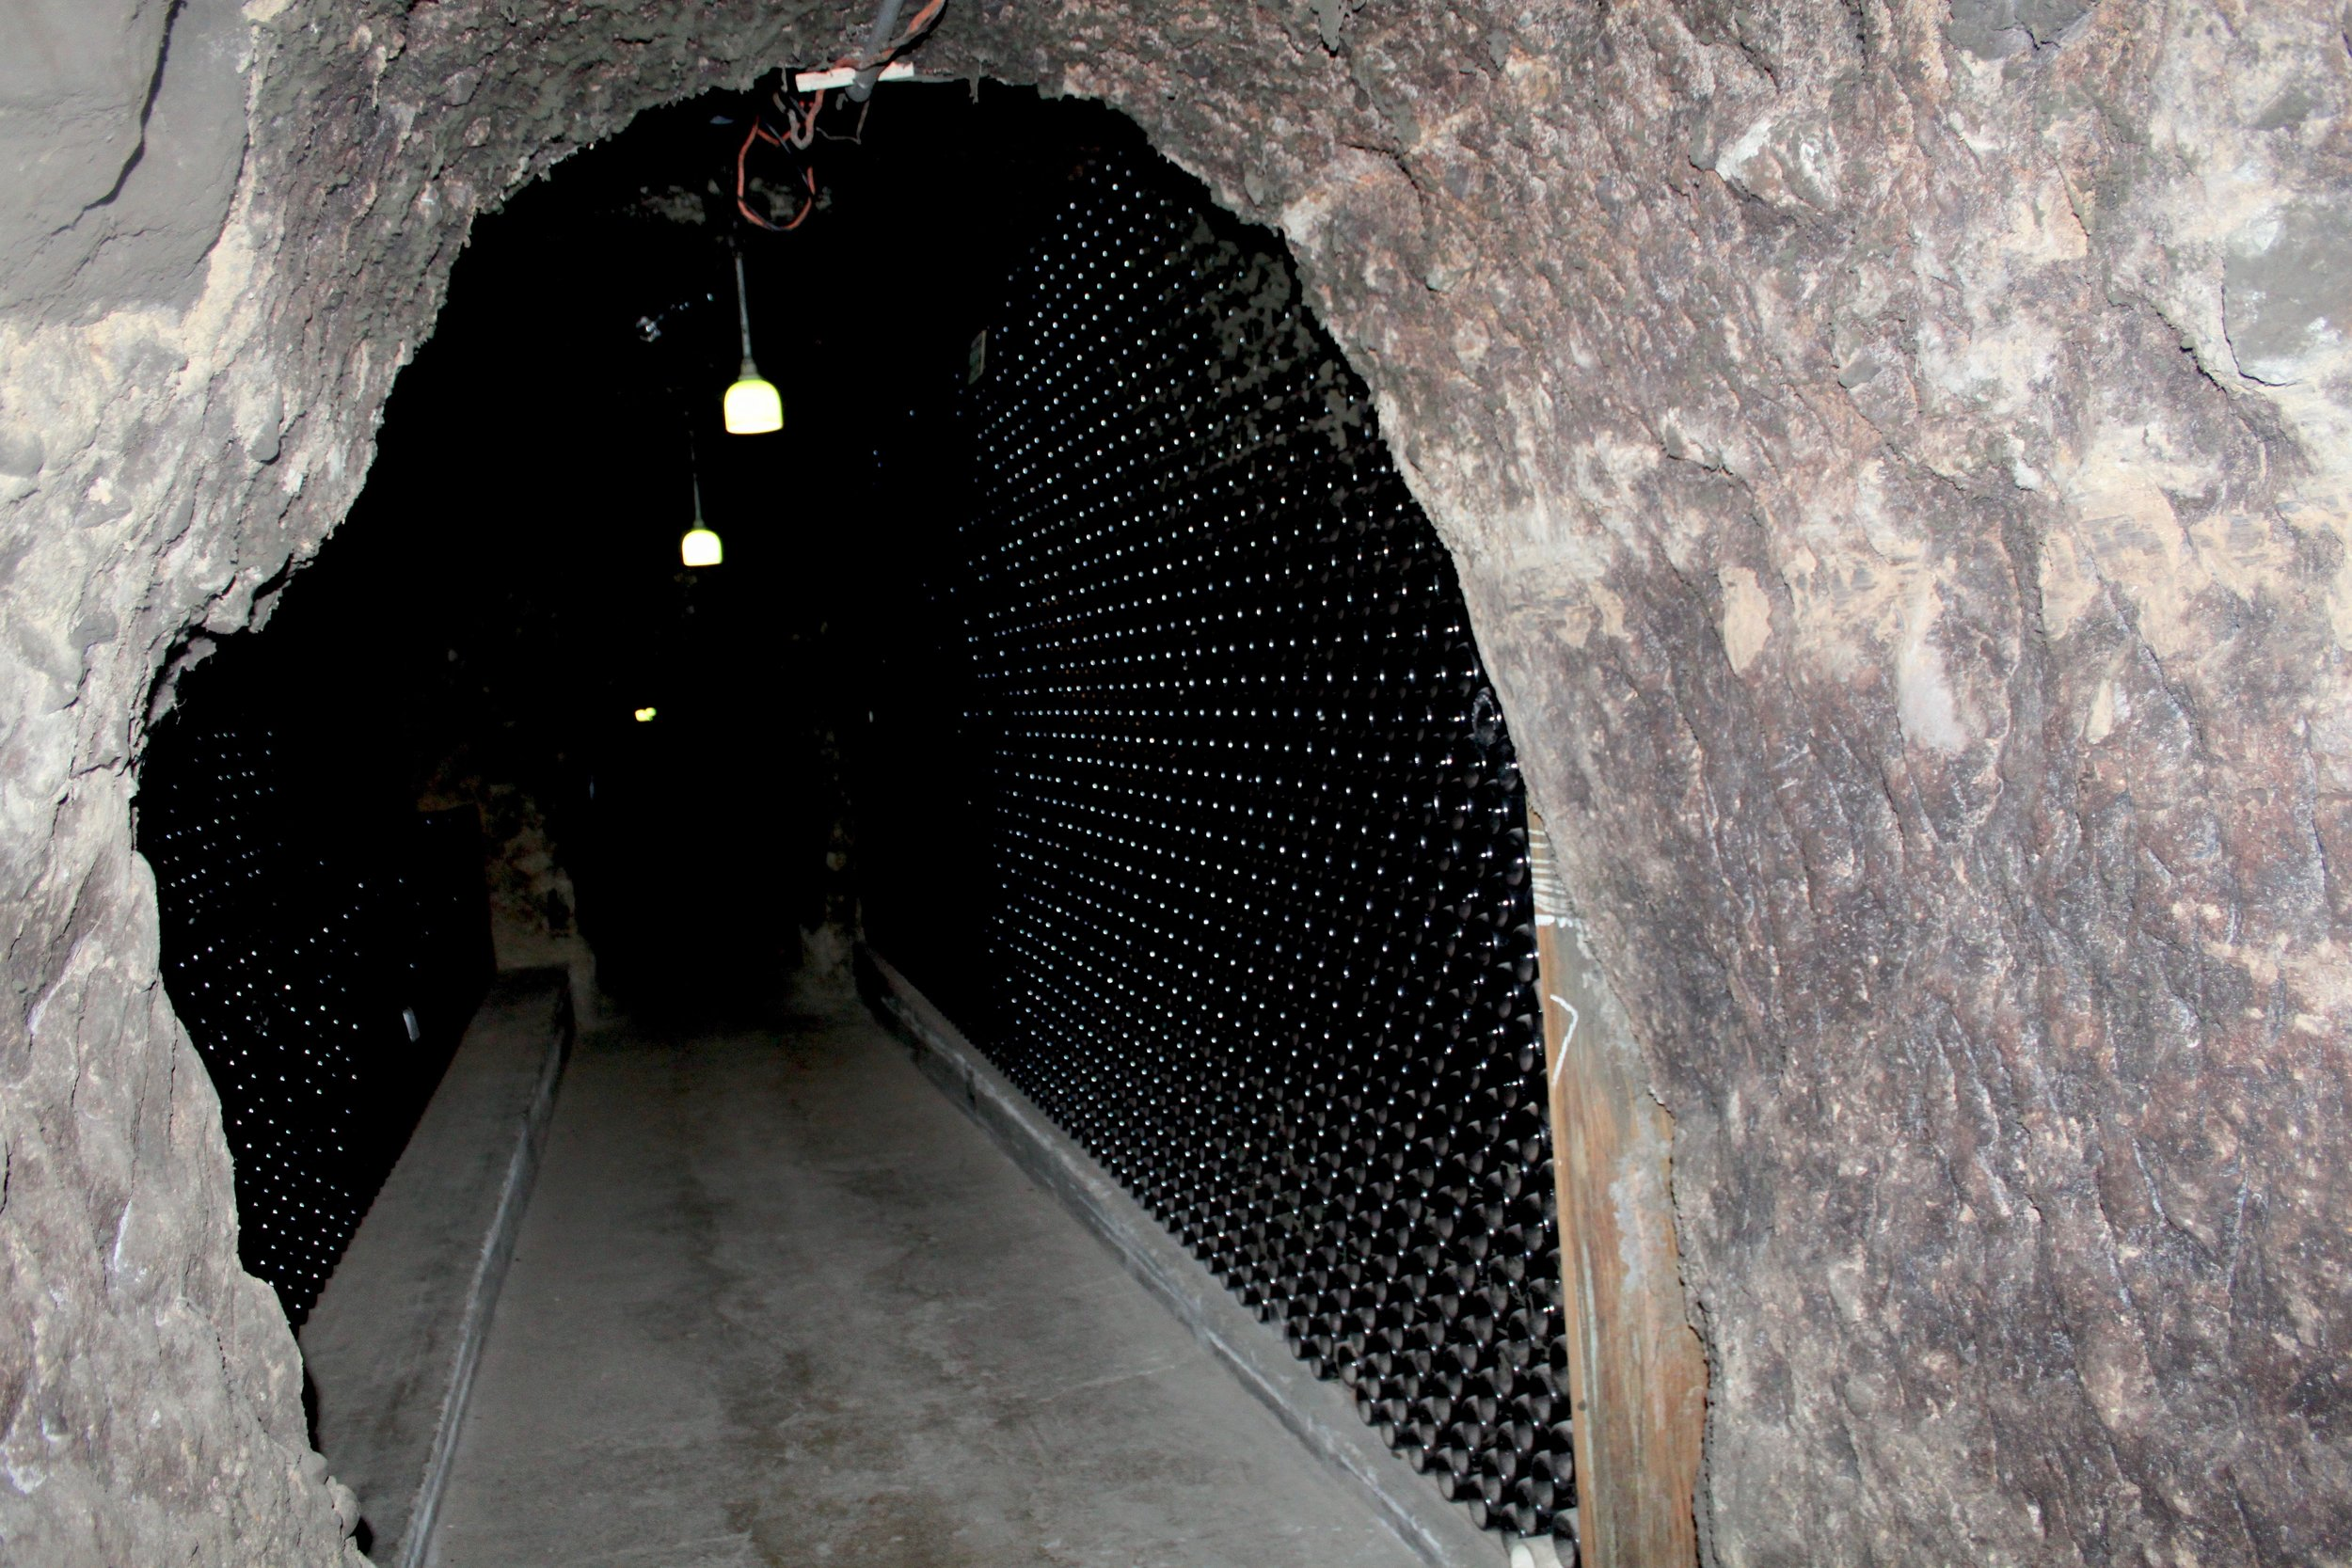 The tour at Shramsberg takes you deep into the caves.